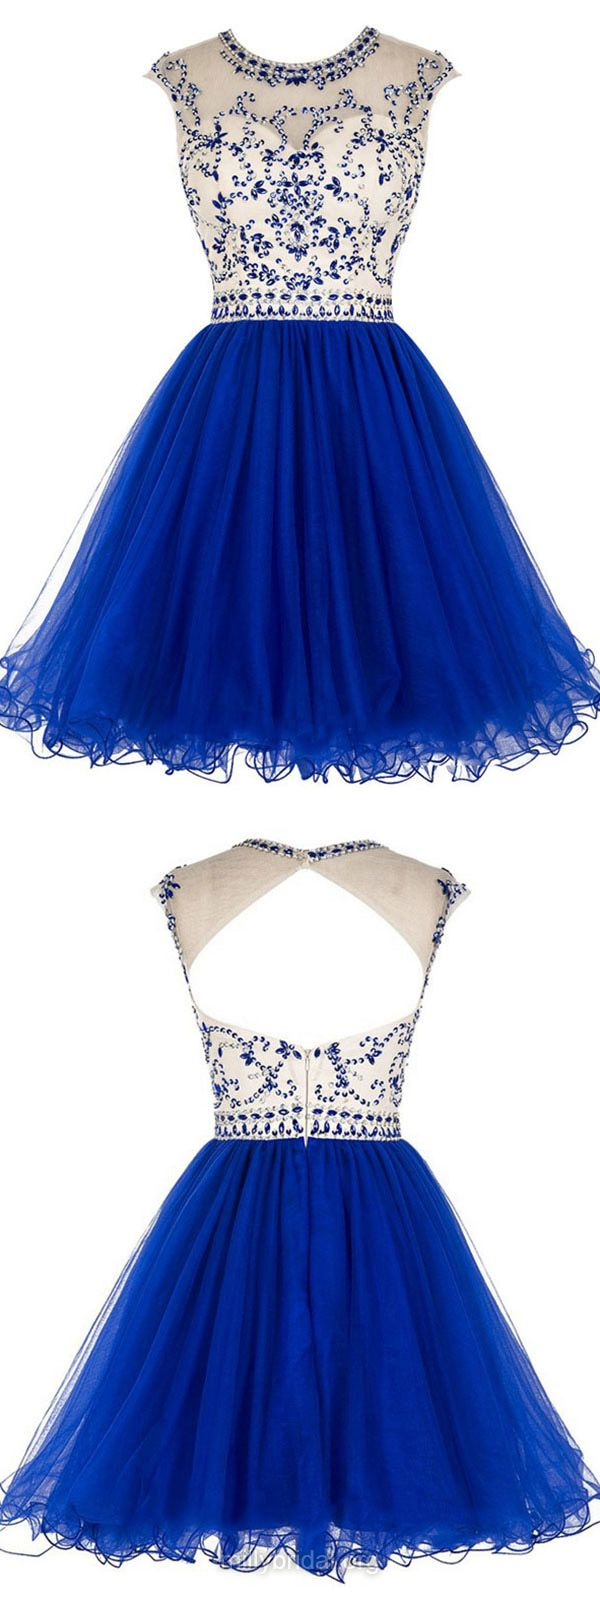 Discounted Blue Prom Dresses, A-line Scoop Neck Cocktail Dress, Tulle Short Formal Party Gowns, Beading Open Back Homecoming Dresses